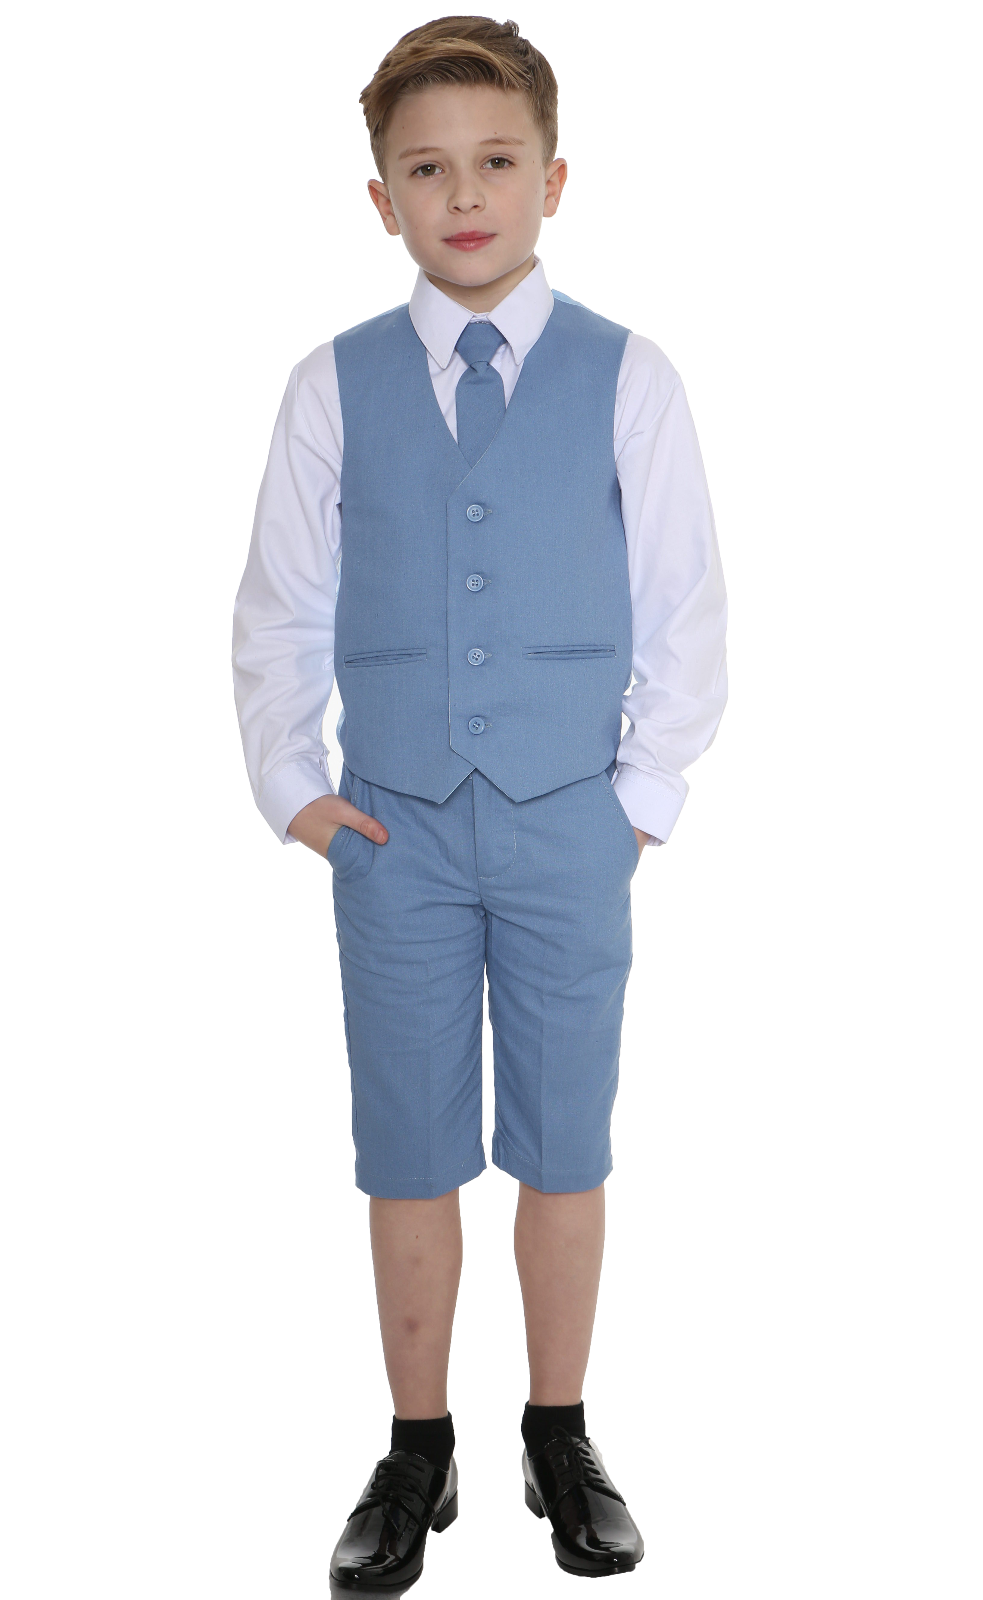 BOYS SUITS LINEN Suit, 4 Piece Short Set Suit, Wedding Page boy ...